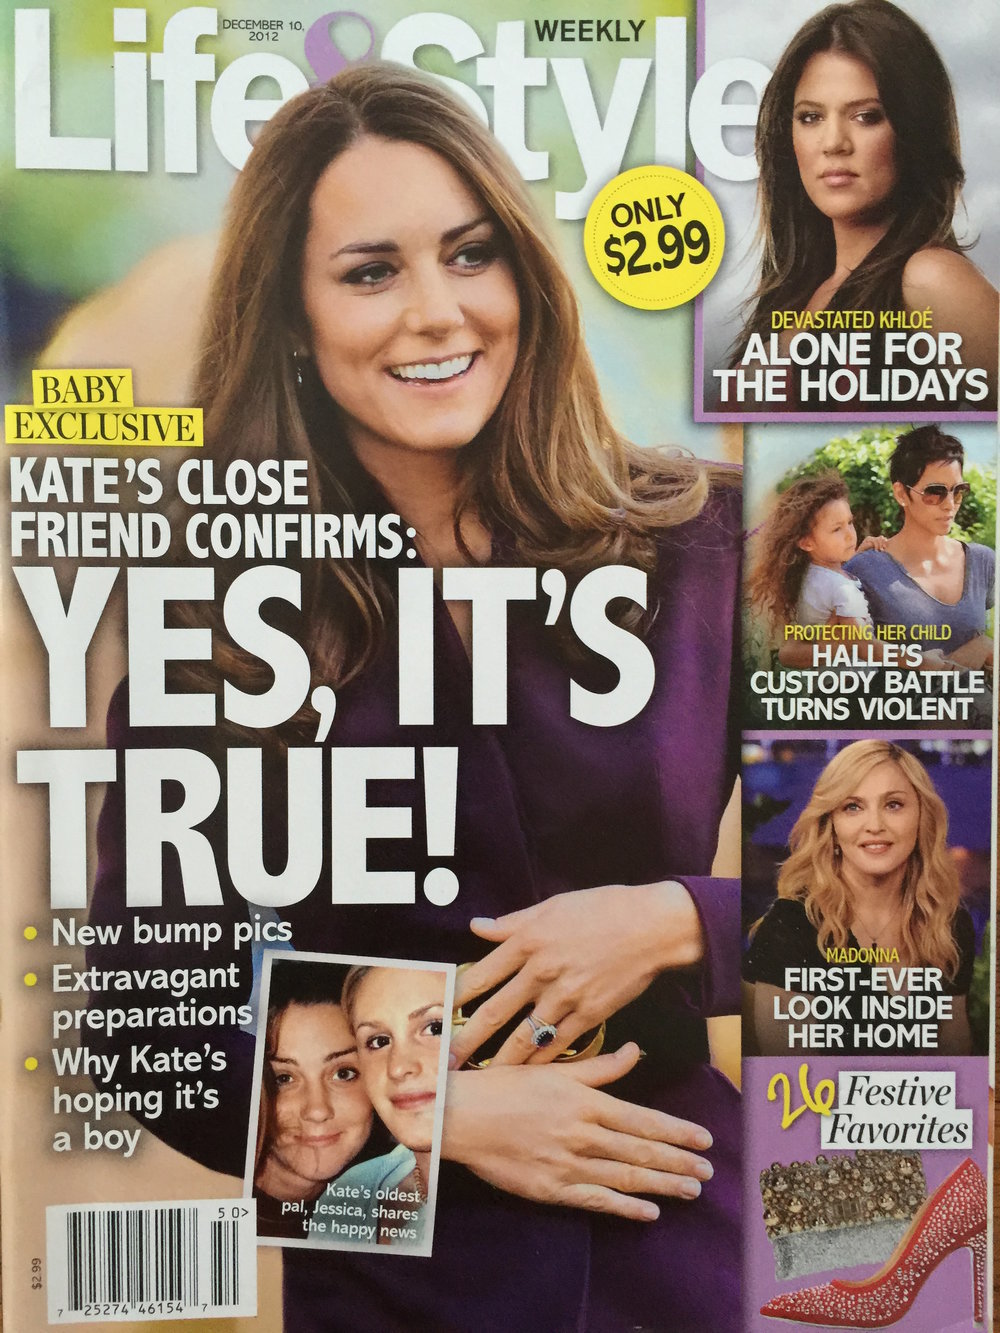 InTouch Cover.JPG